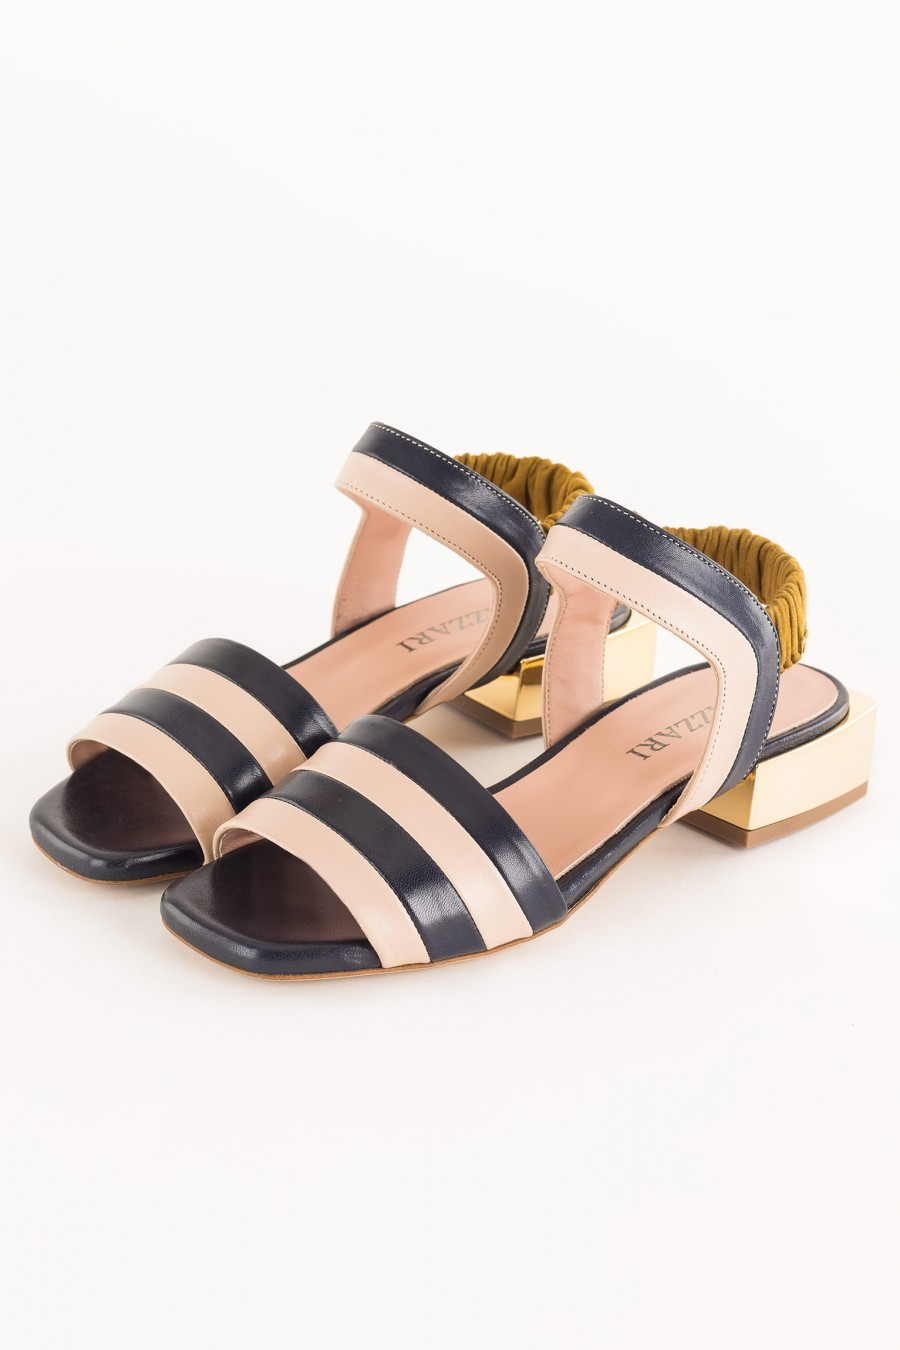 sandal with low square heel